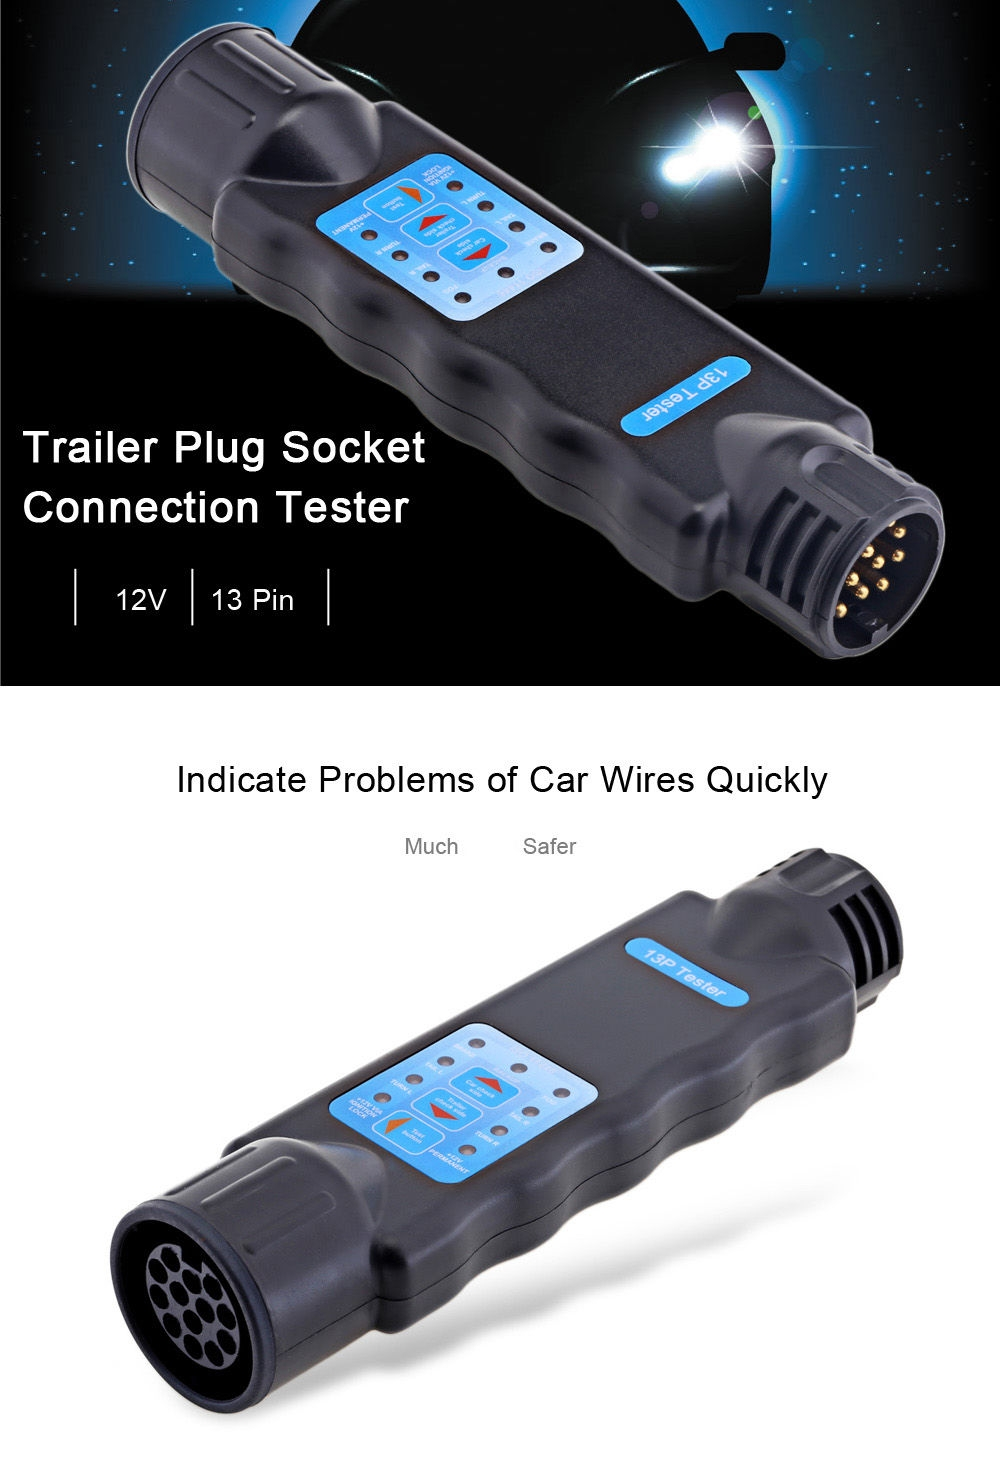 T23331 13 Pin Trailer Plug Socket Connection Tester Vehicle Diagnostic Tool